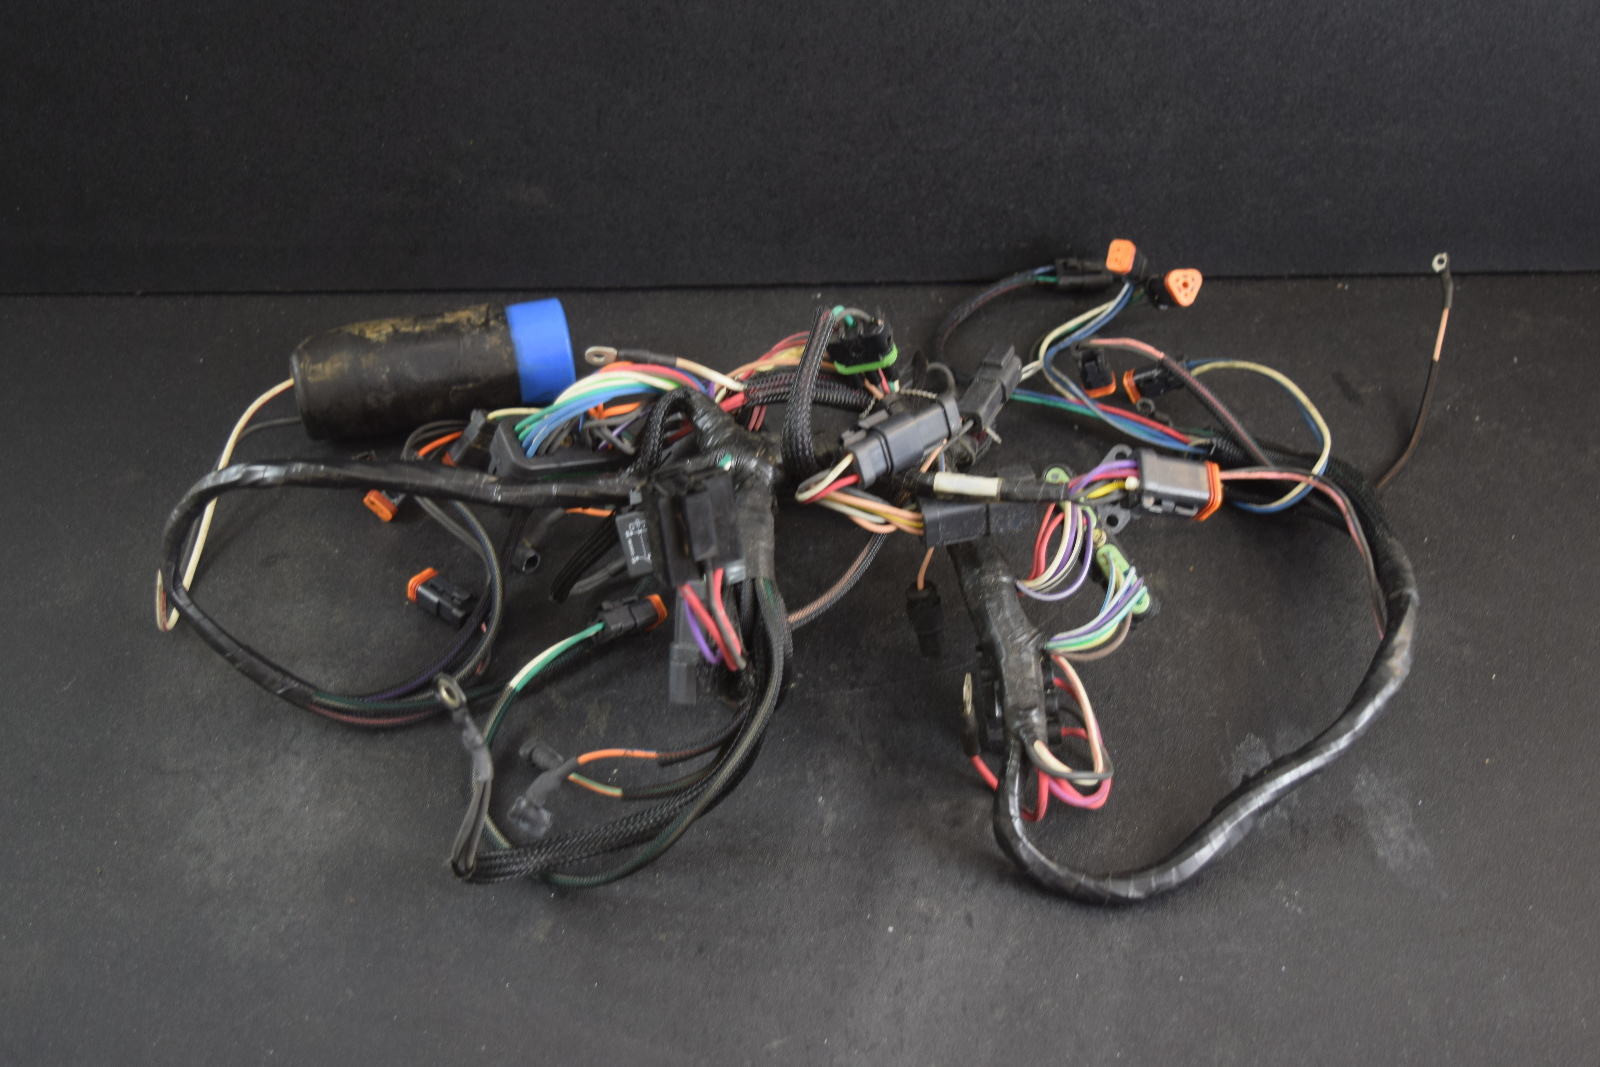 1998 1999 Johnson Evinrude Motor Cable Engine Harness 586266 90 115 Wiring For Outboards Hp V4